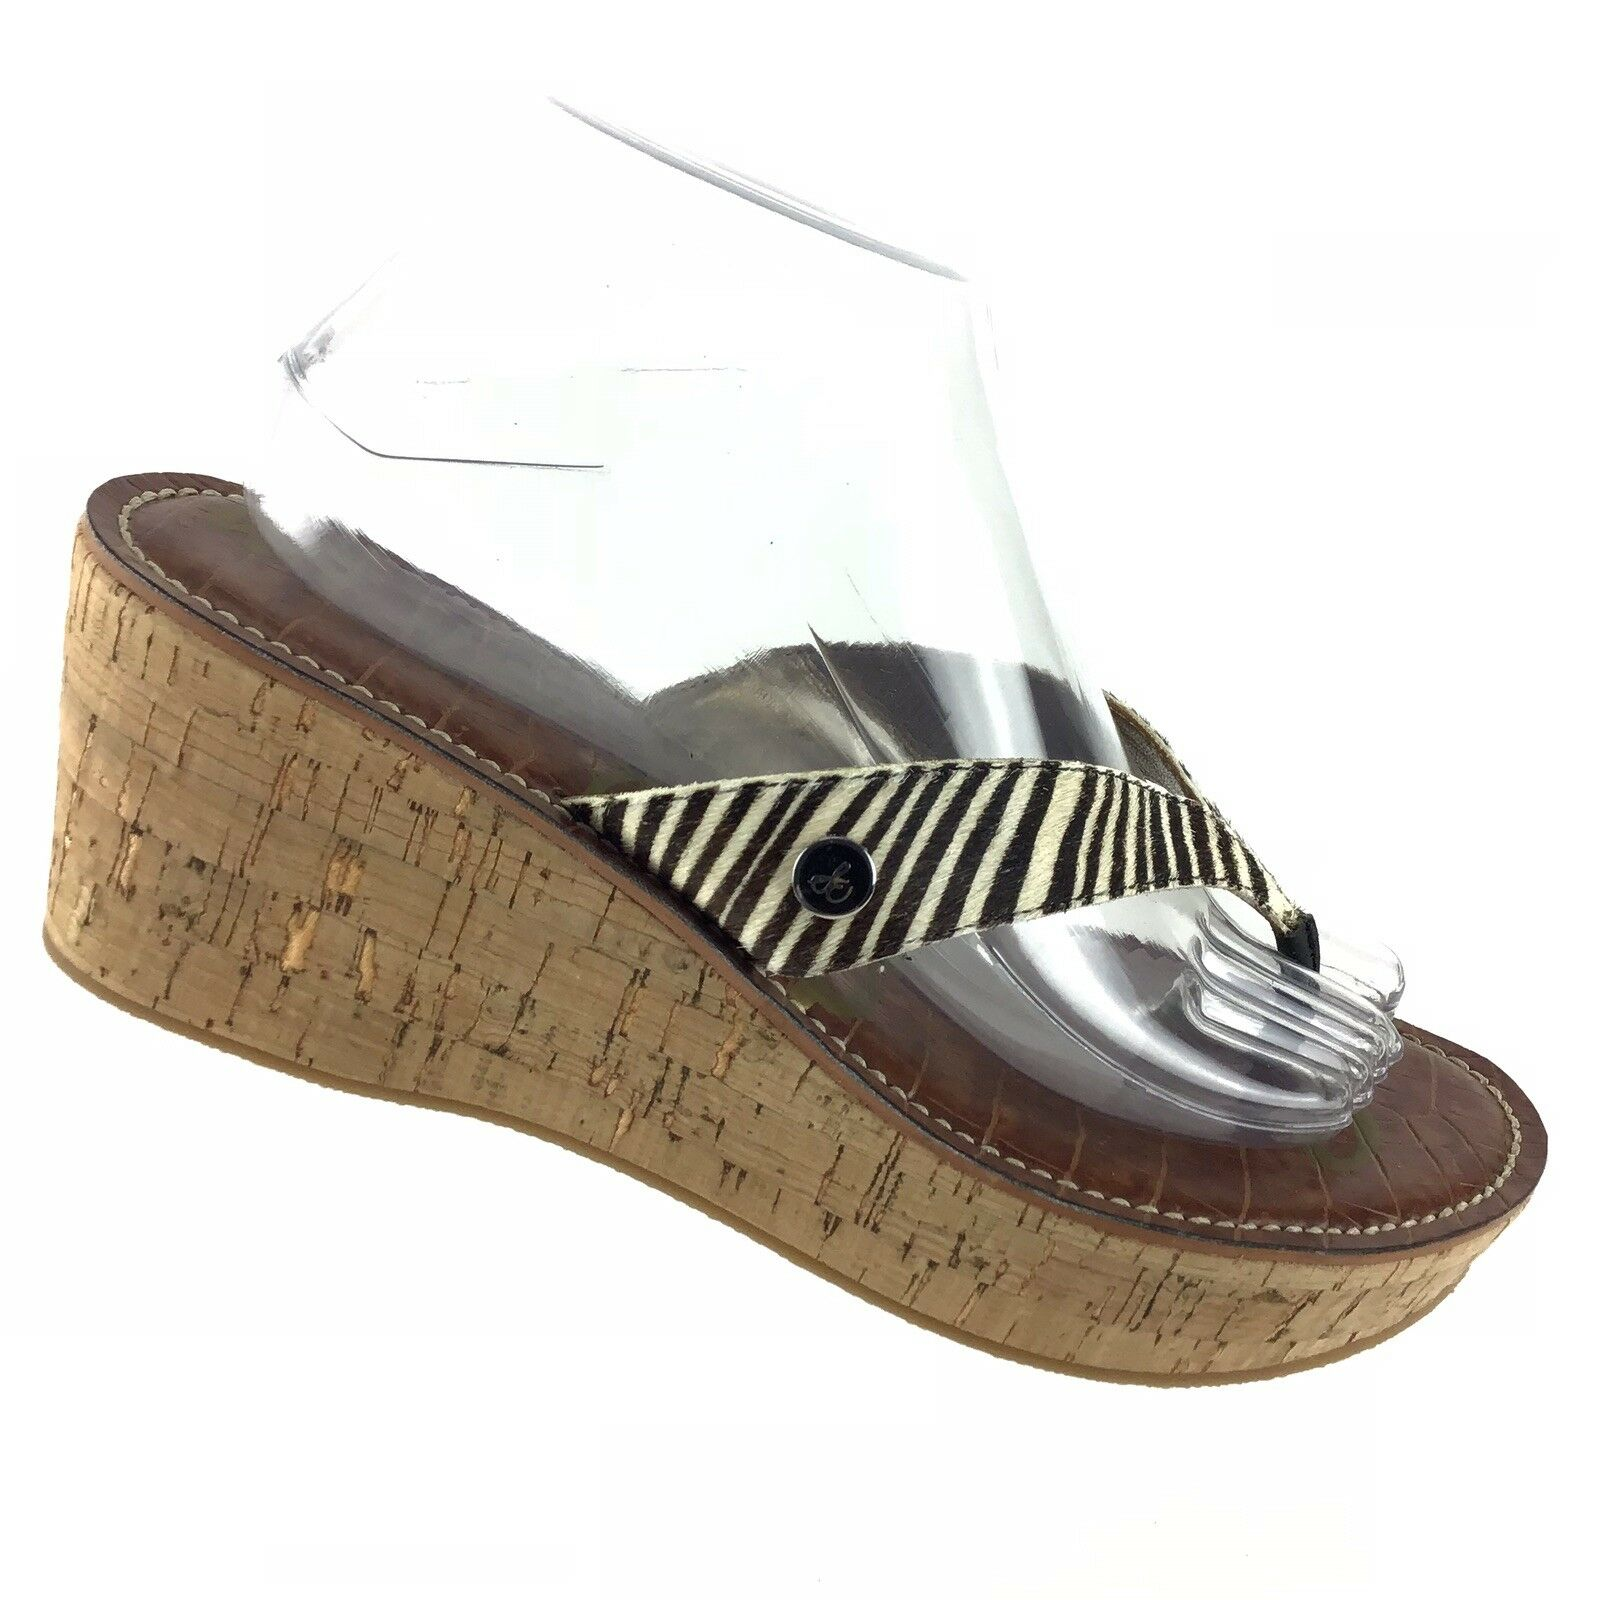 Sam Edelman Romy  Women's 10 M Striped Wedge Heel Platform Casual Sandals R1S9